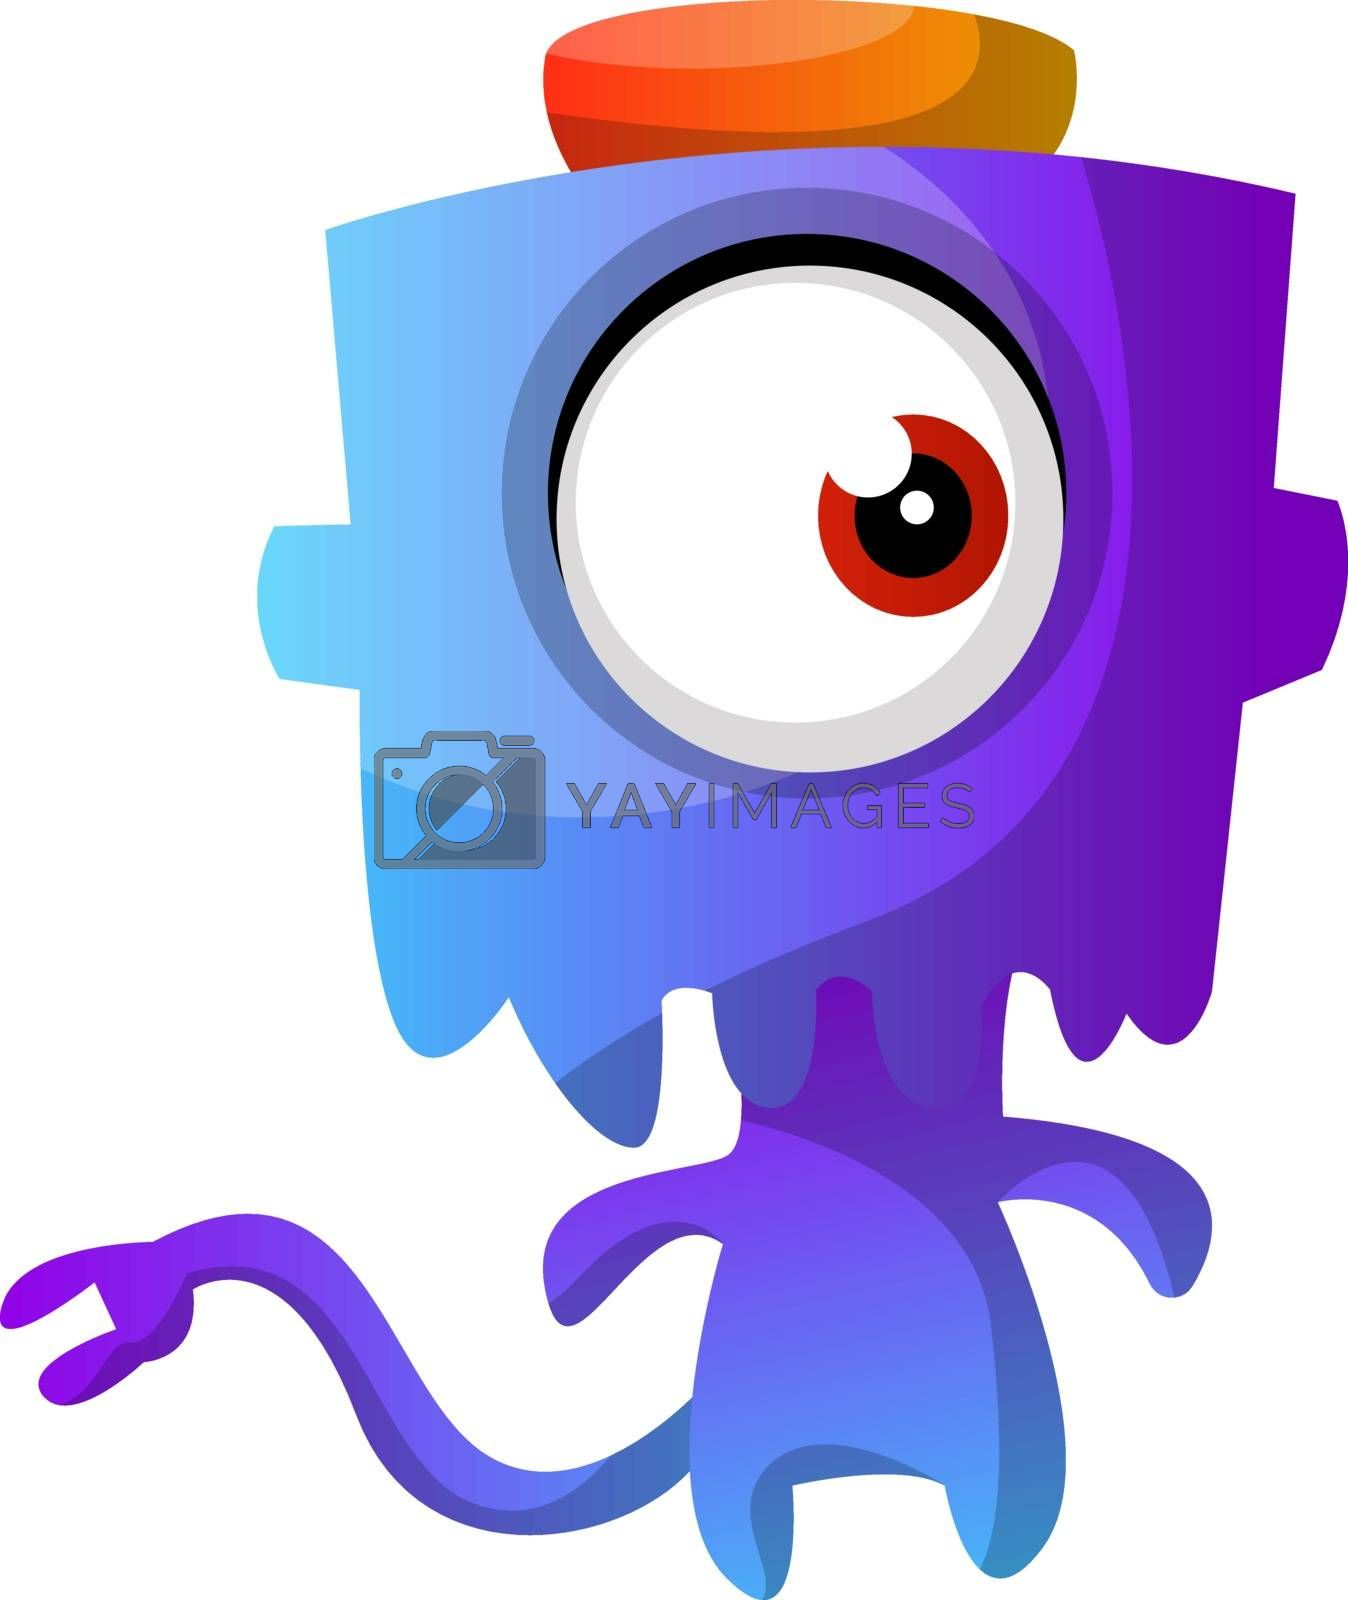 Royalty free image of Blue monster with a hat illustration vector on white background by Morphart